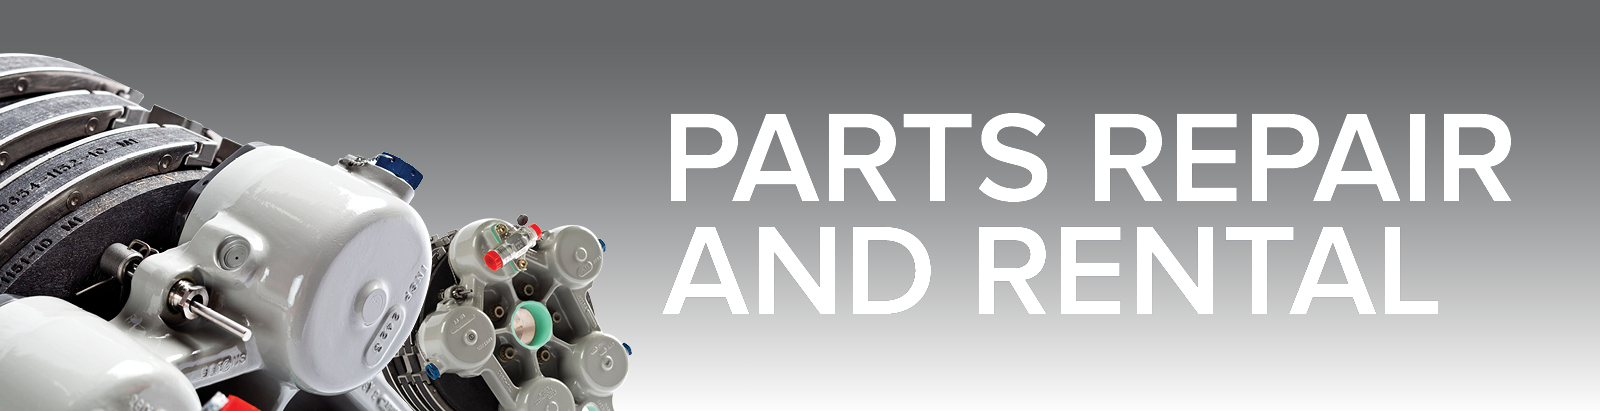 Parts Repair and Rental